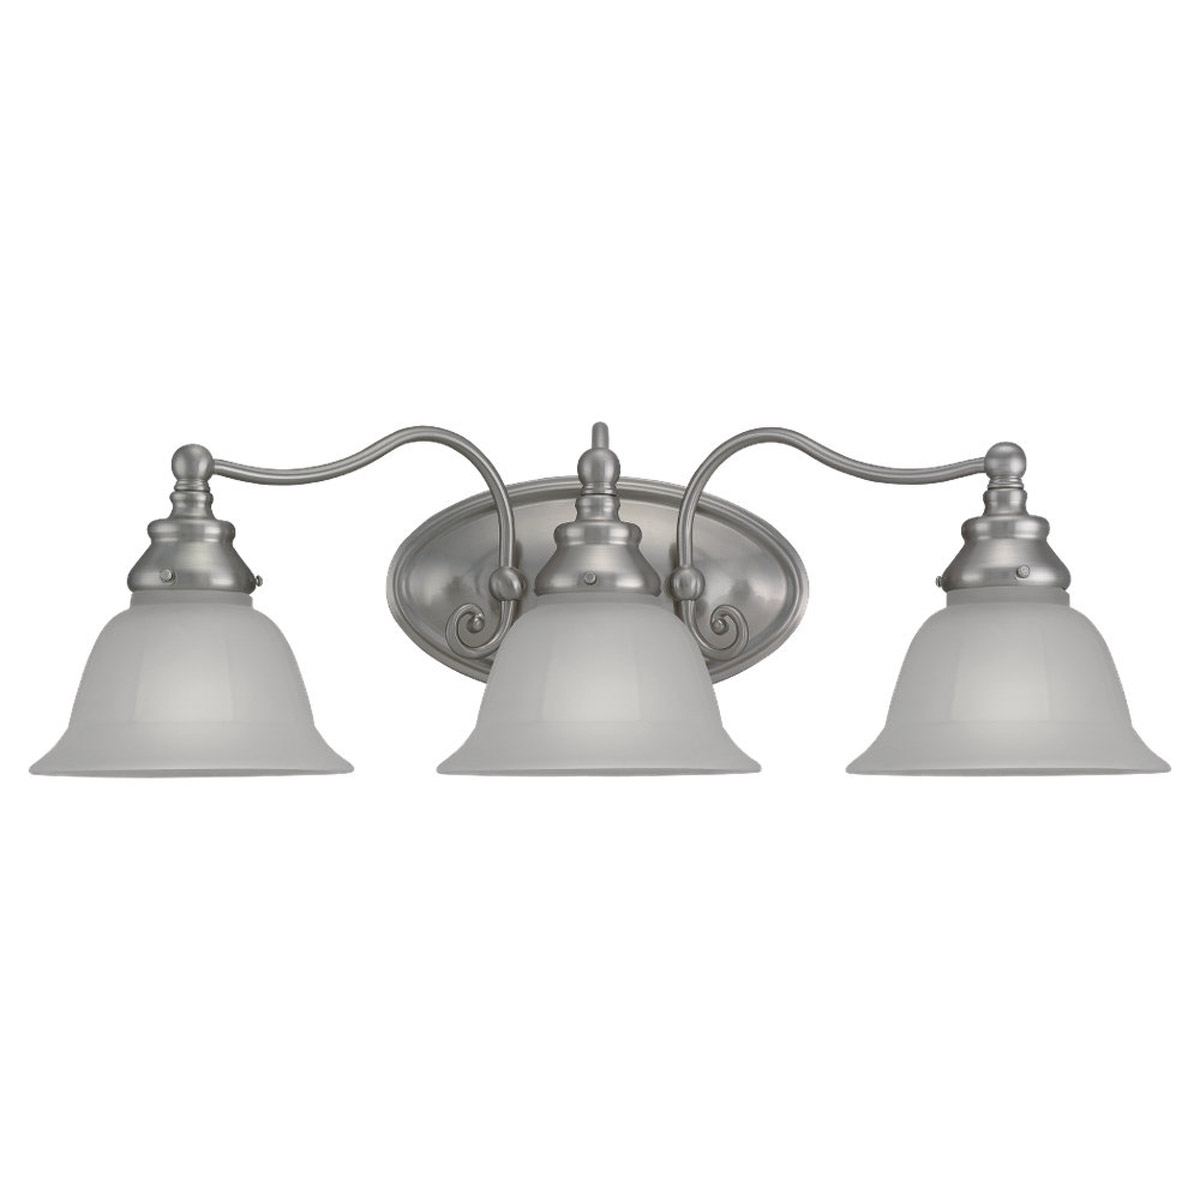 Sea Gull Lighting Canterbury 3 Light Bath Vanity in Brushed Nickel 49652BLE-962 photo